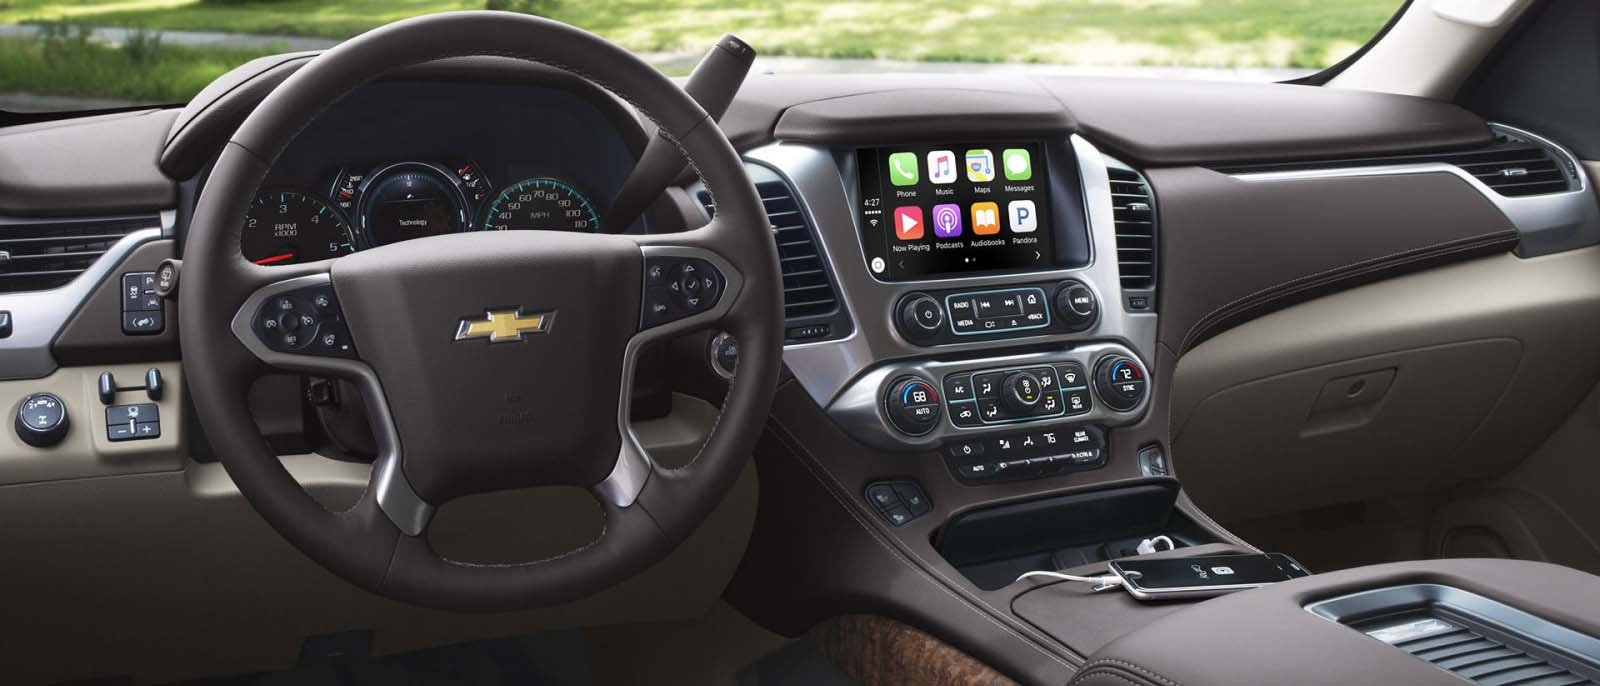 2017 Chevy Suburban Interior ...